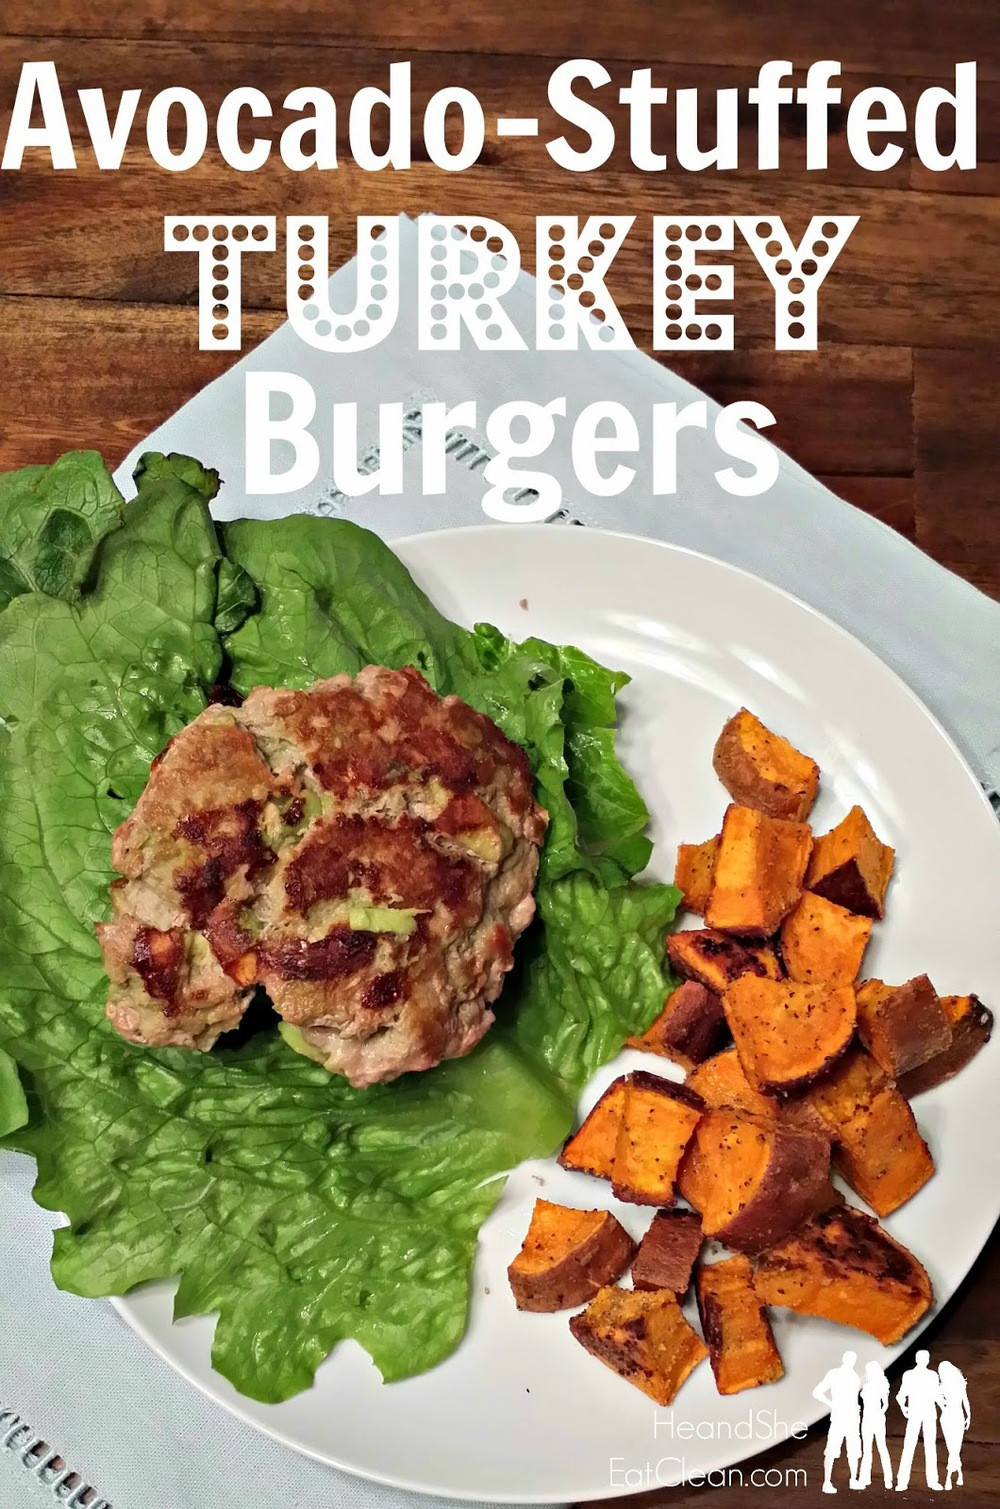 avocado-stuffed-designer-gourmet-turkey-burgers-recipe-he-she-eat-clean.jpg